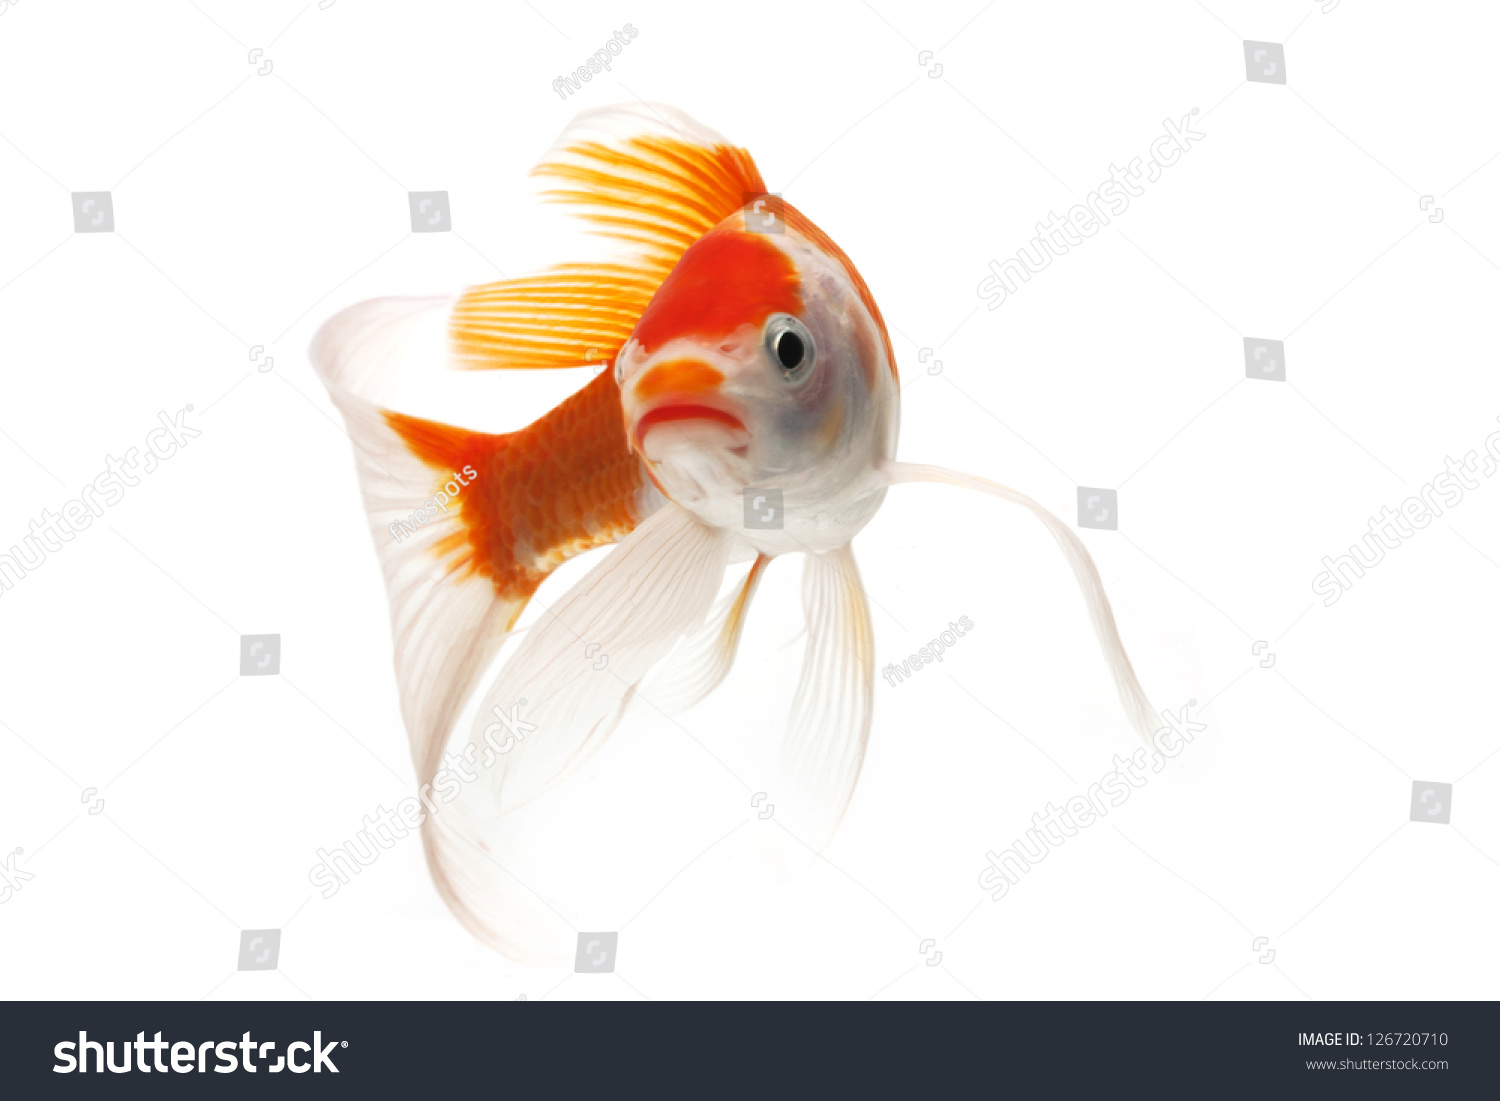 Red and white koi fish isolated on white background stock for Red and white koi fish